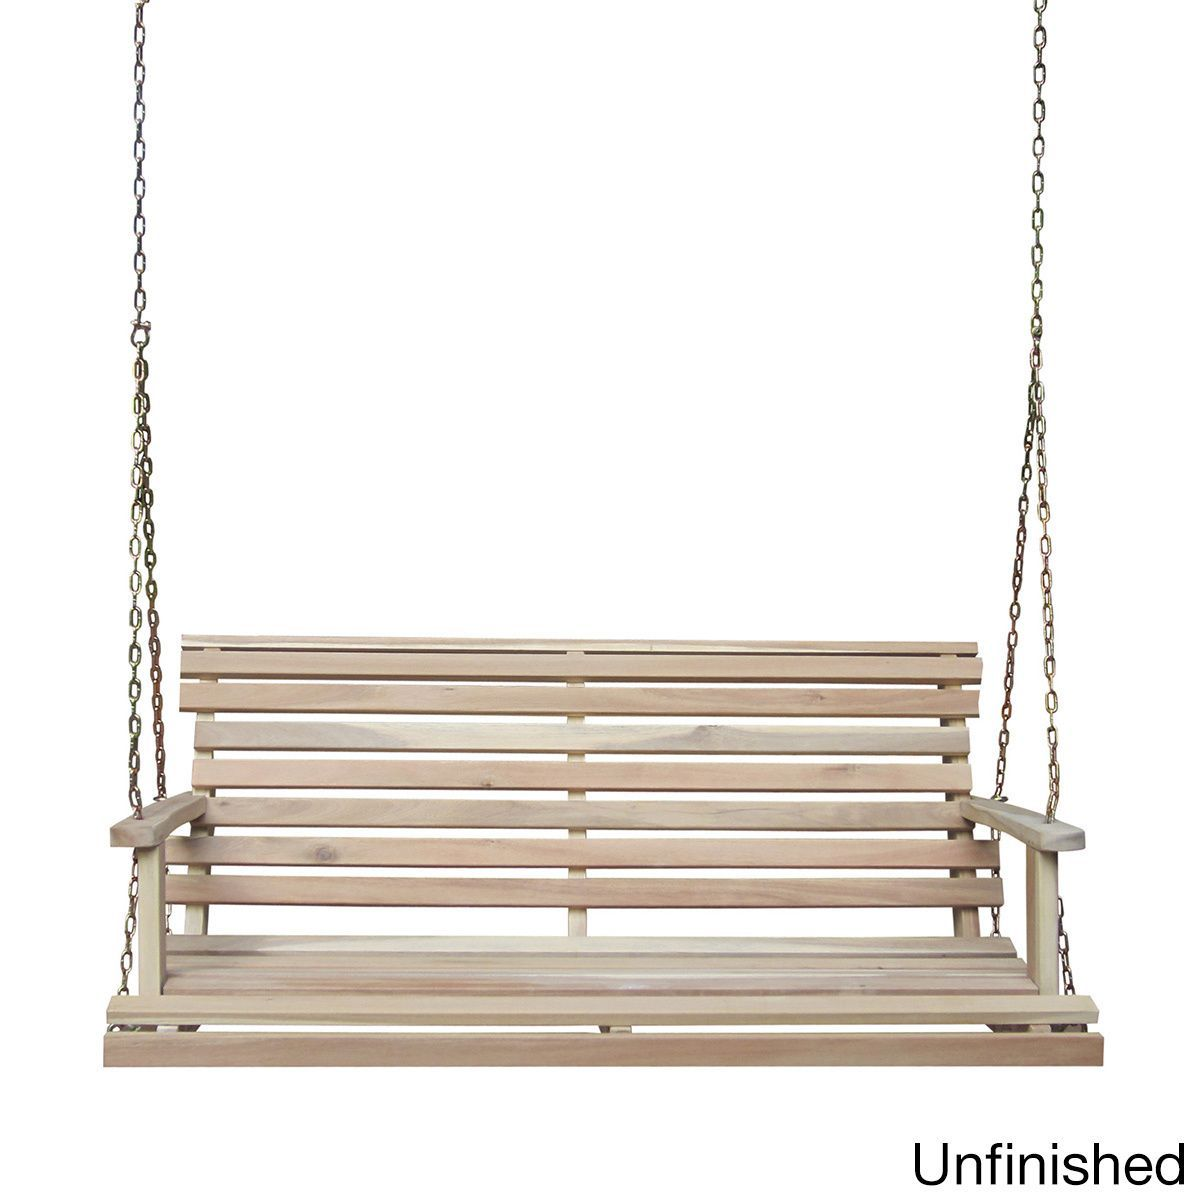 Acasia wood bench swing with chain unfinished grey metal sw